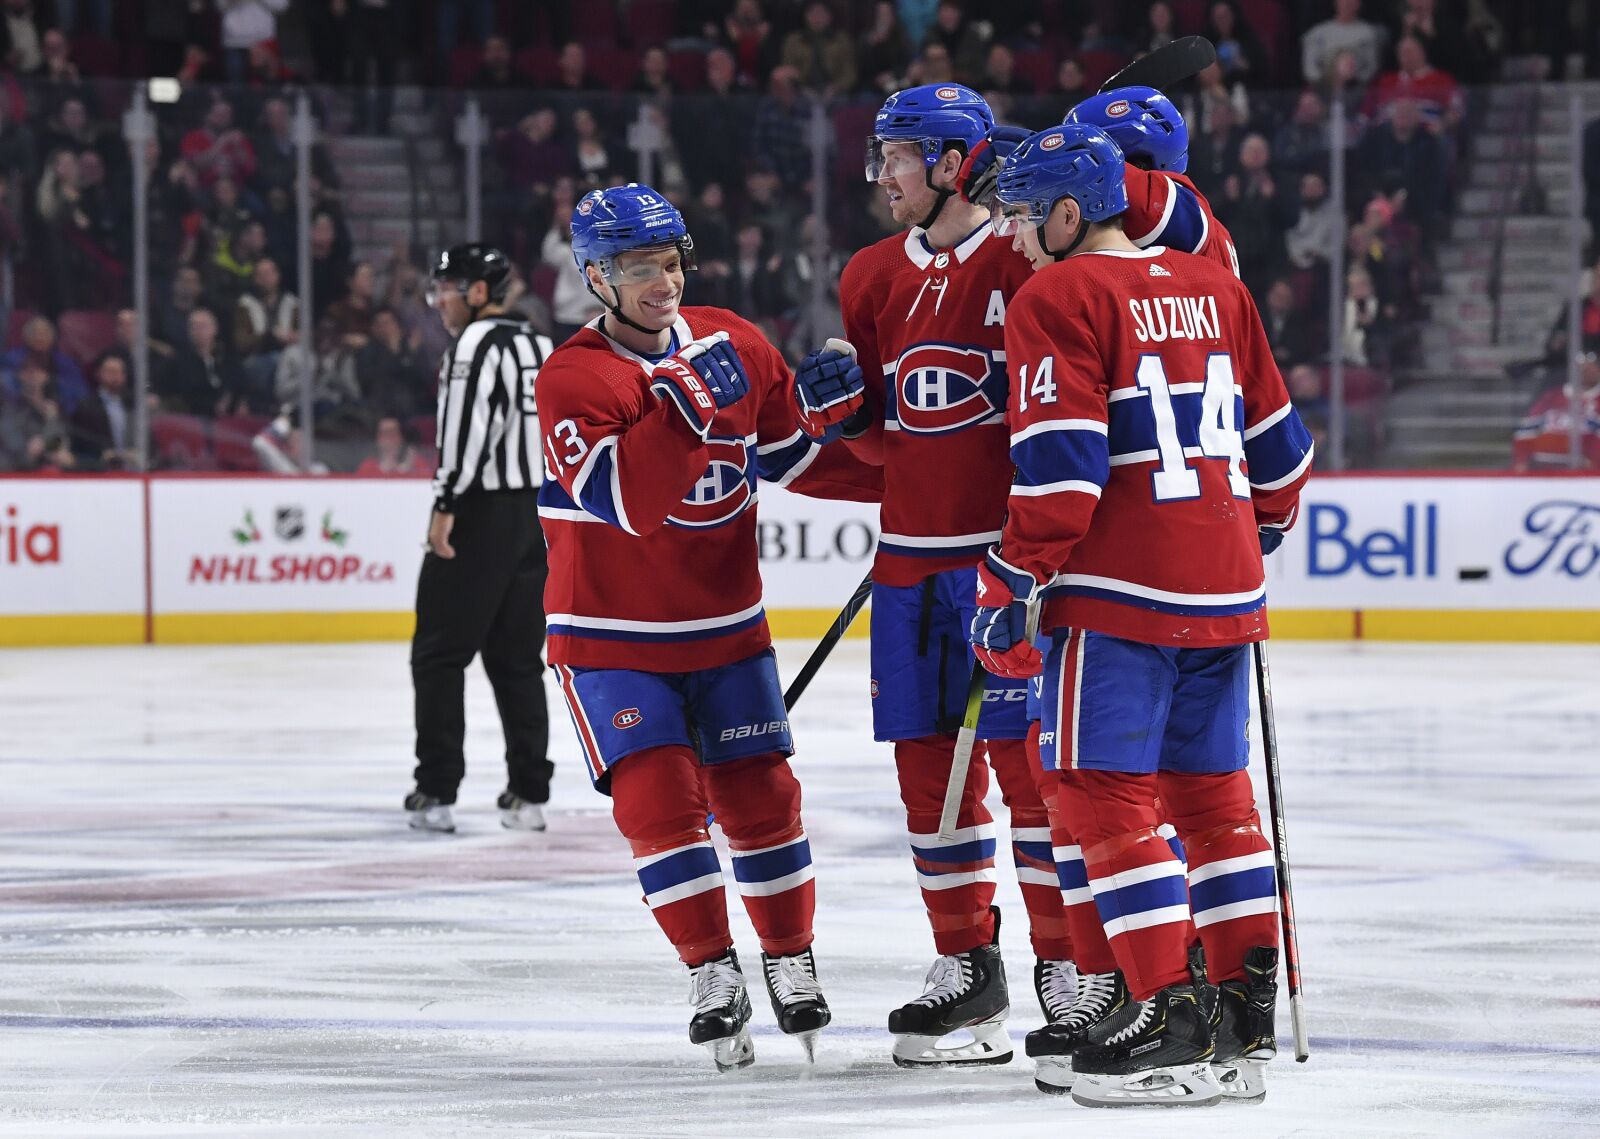 Montreal Canadiens: The NHL has entered a dangerous time